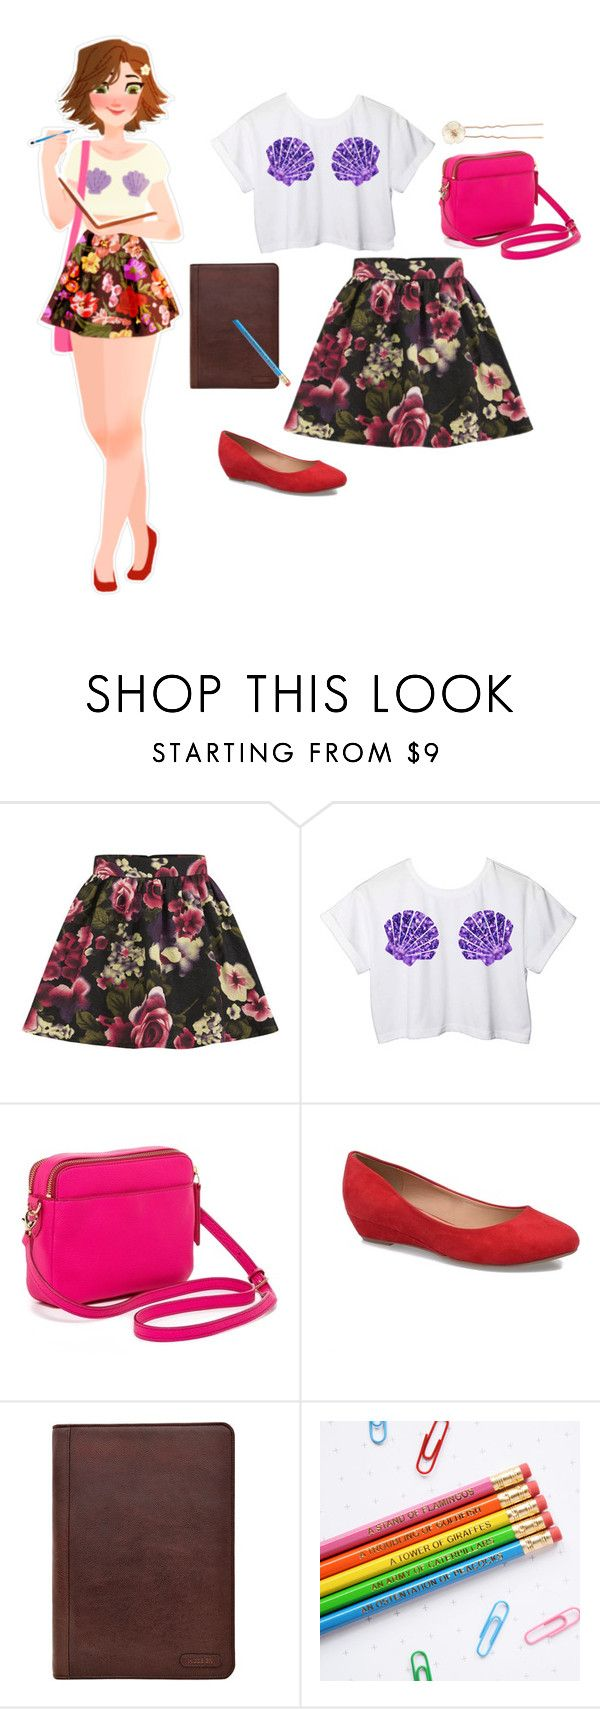 """""""Rapunzel"""" by disney-andthings ❤ liked on Polyvore featuring Disney, Girls On Film, FOSSIL, Hidesign and Accessorize"""